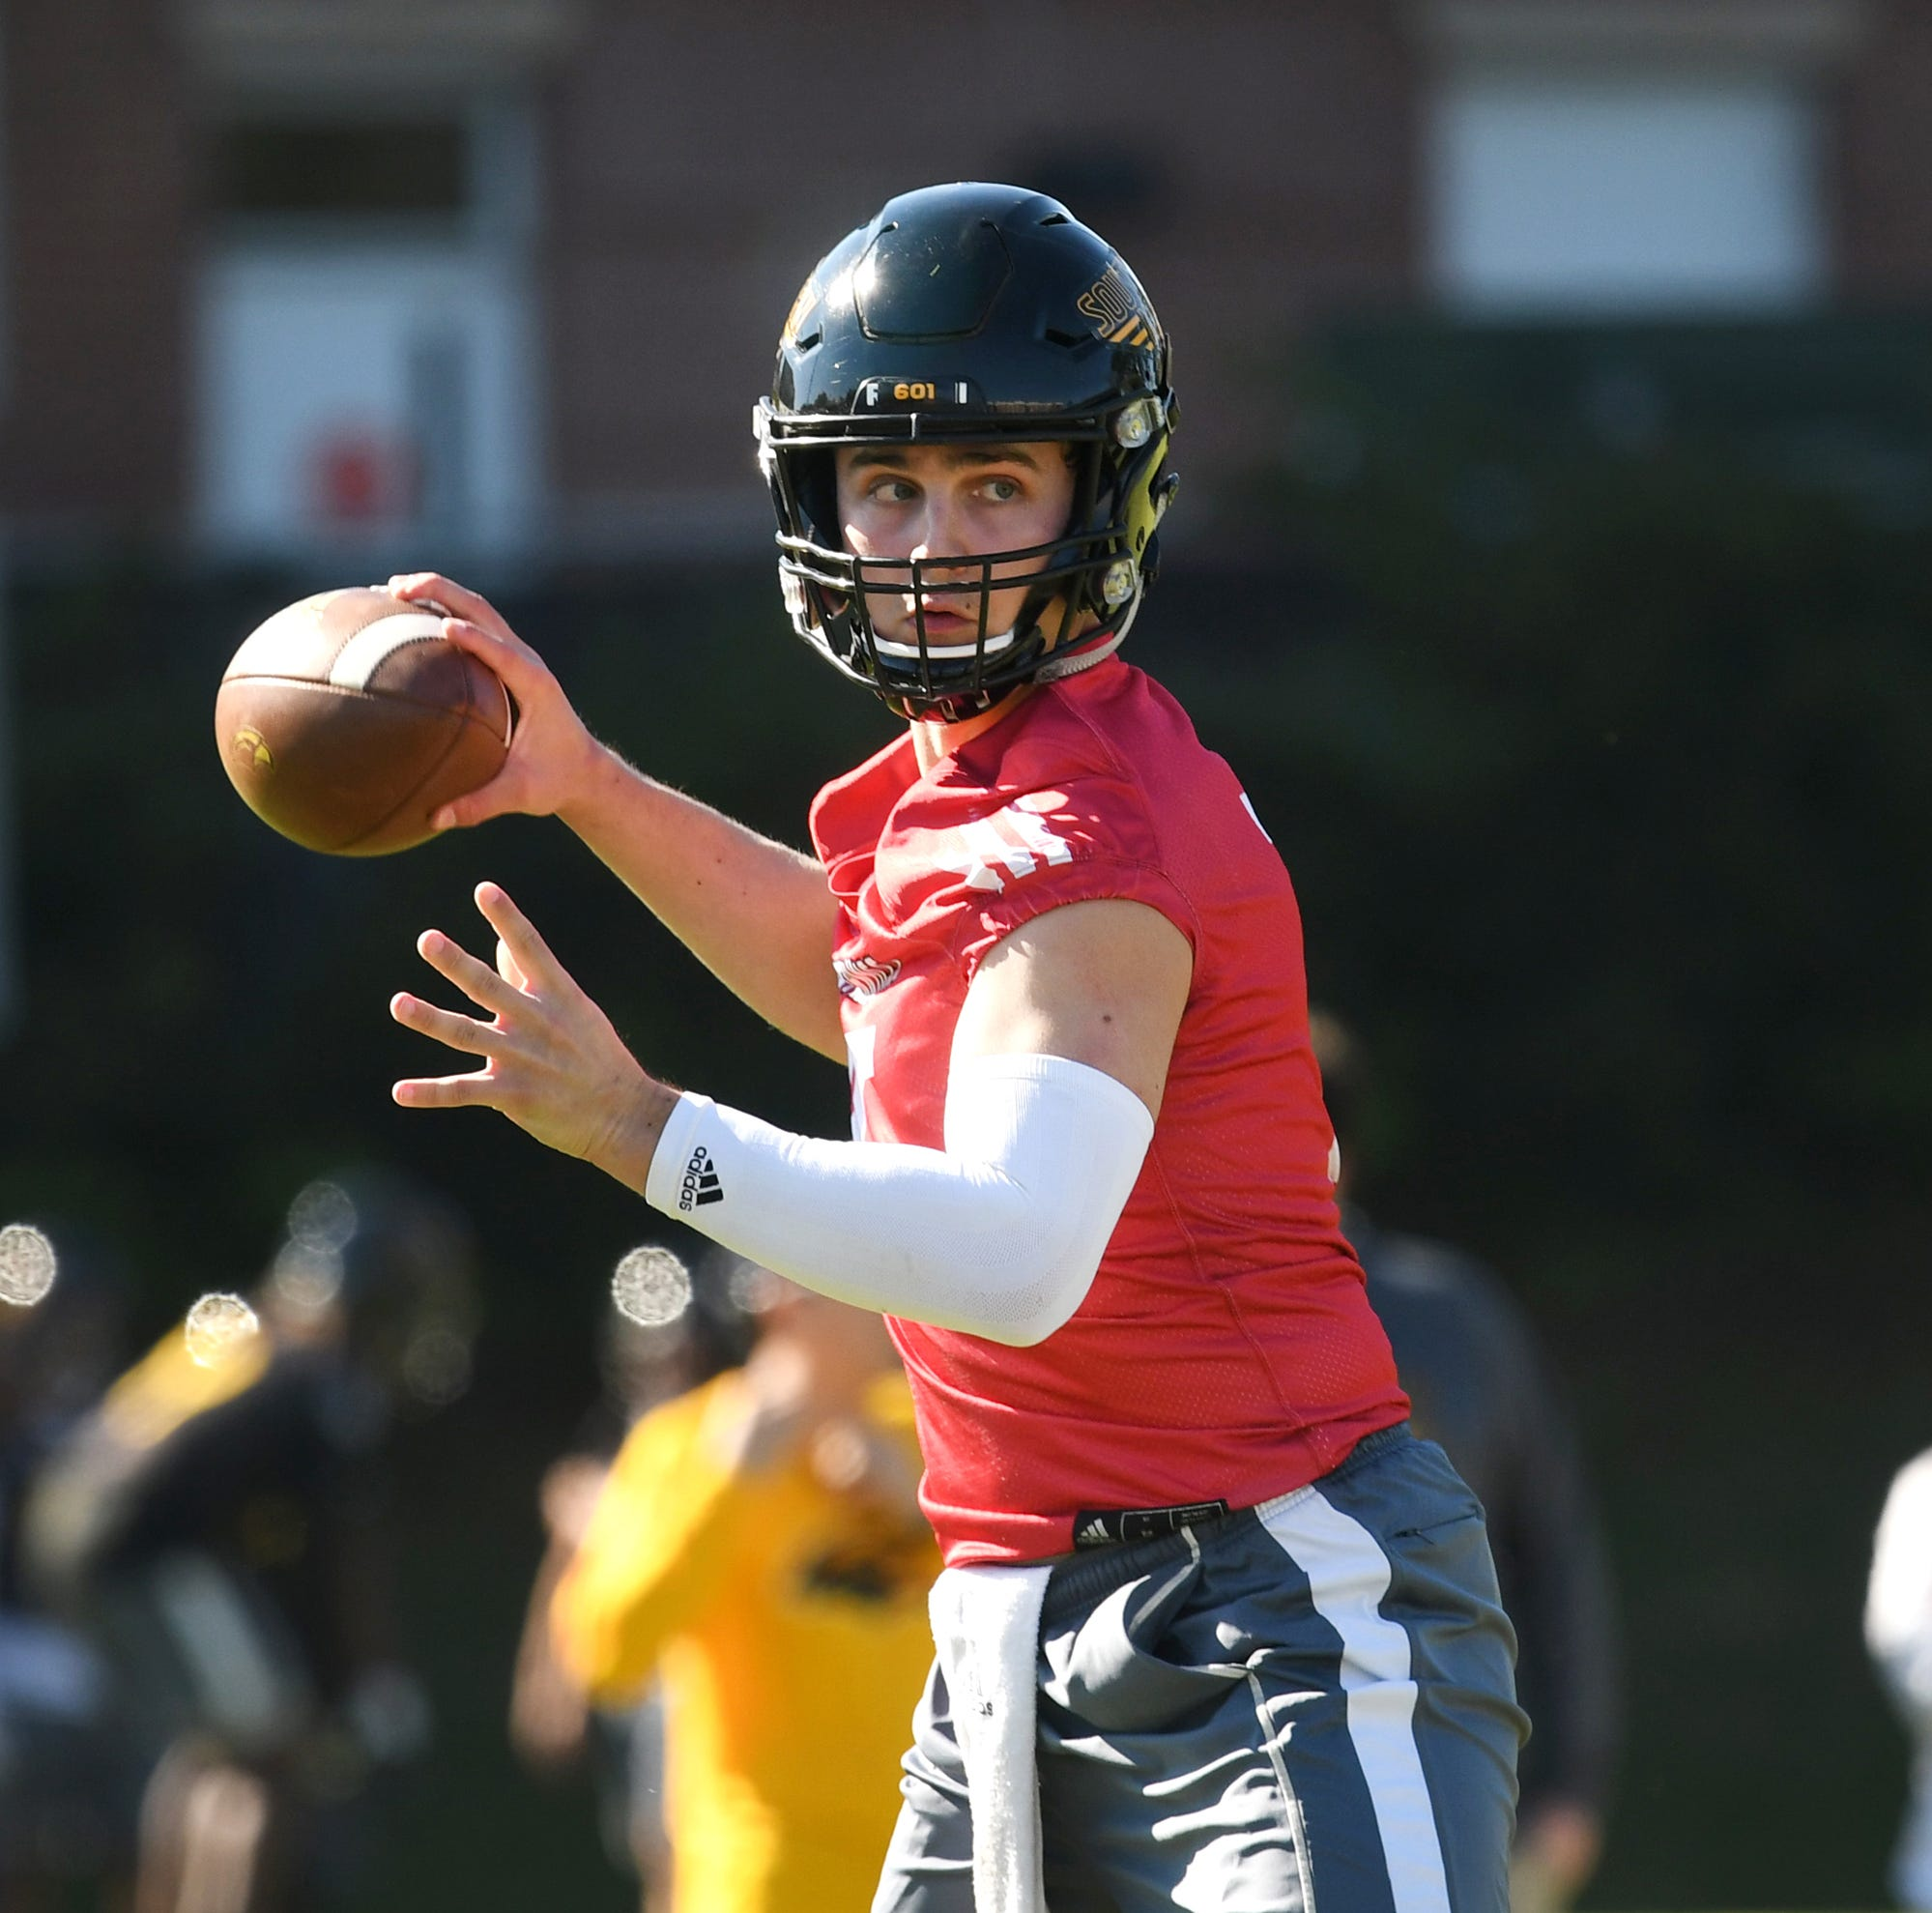 Quarterback Jack Abraham leading by example in Golden Eagles' spring practices